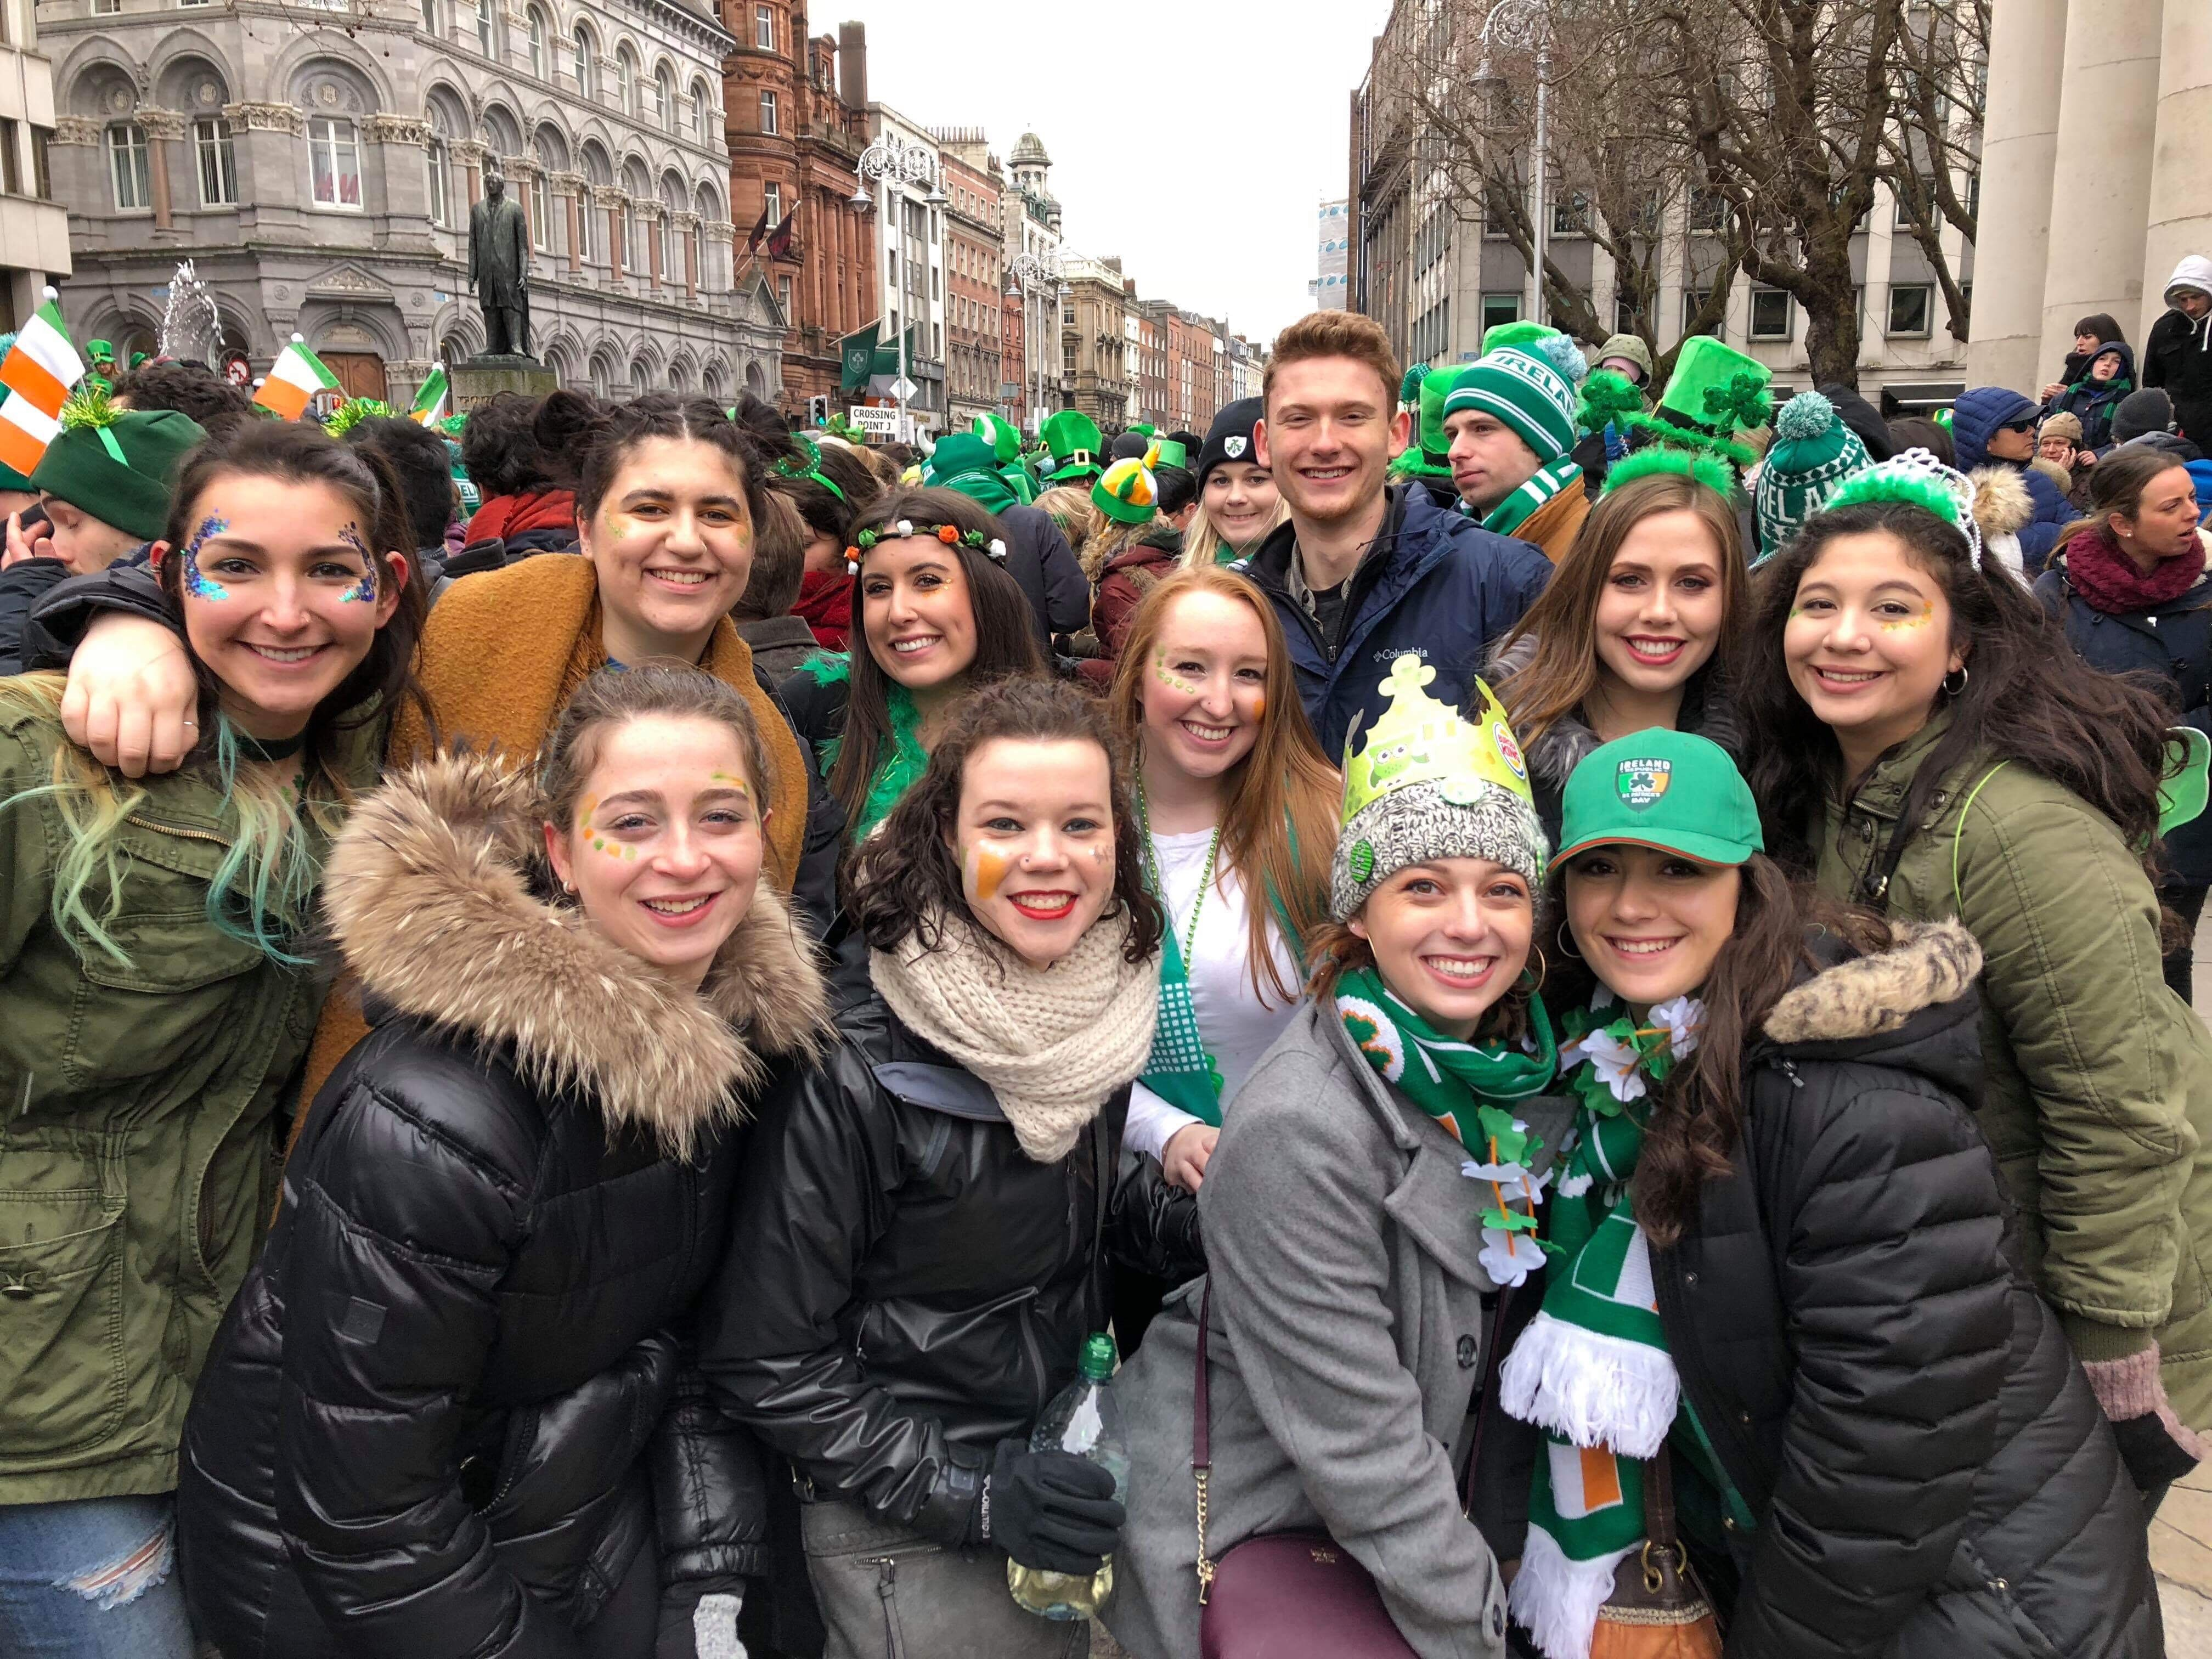 CAPAStudyAbroad_Dublin_Spring2018_From Brandon Mooney - With Friends at St. Patrick's Day Parade.jpeg